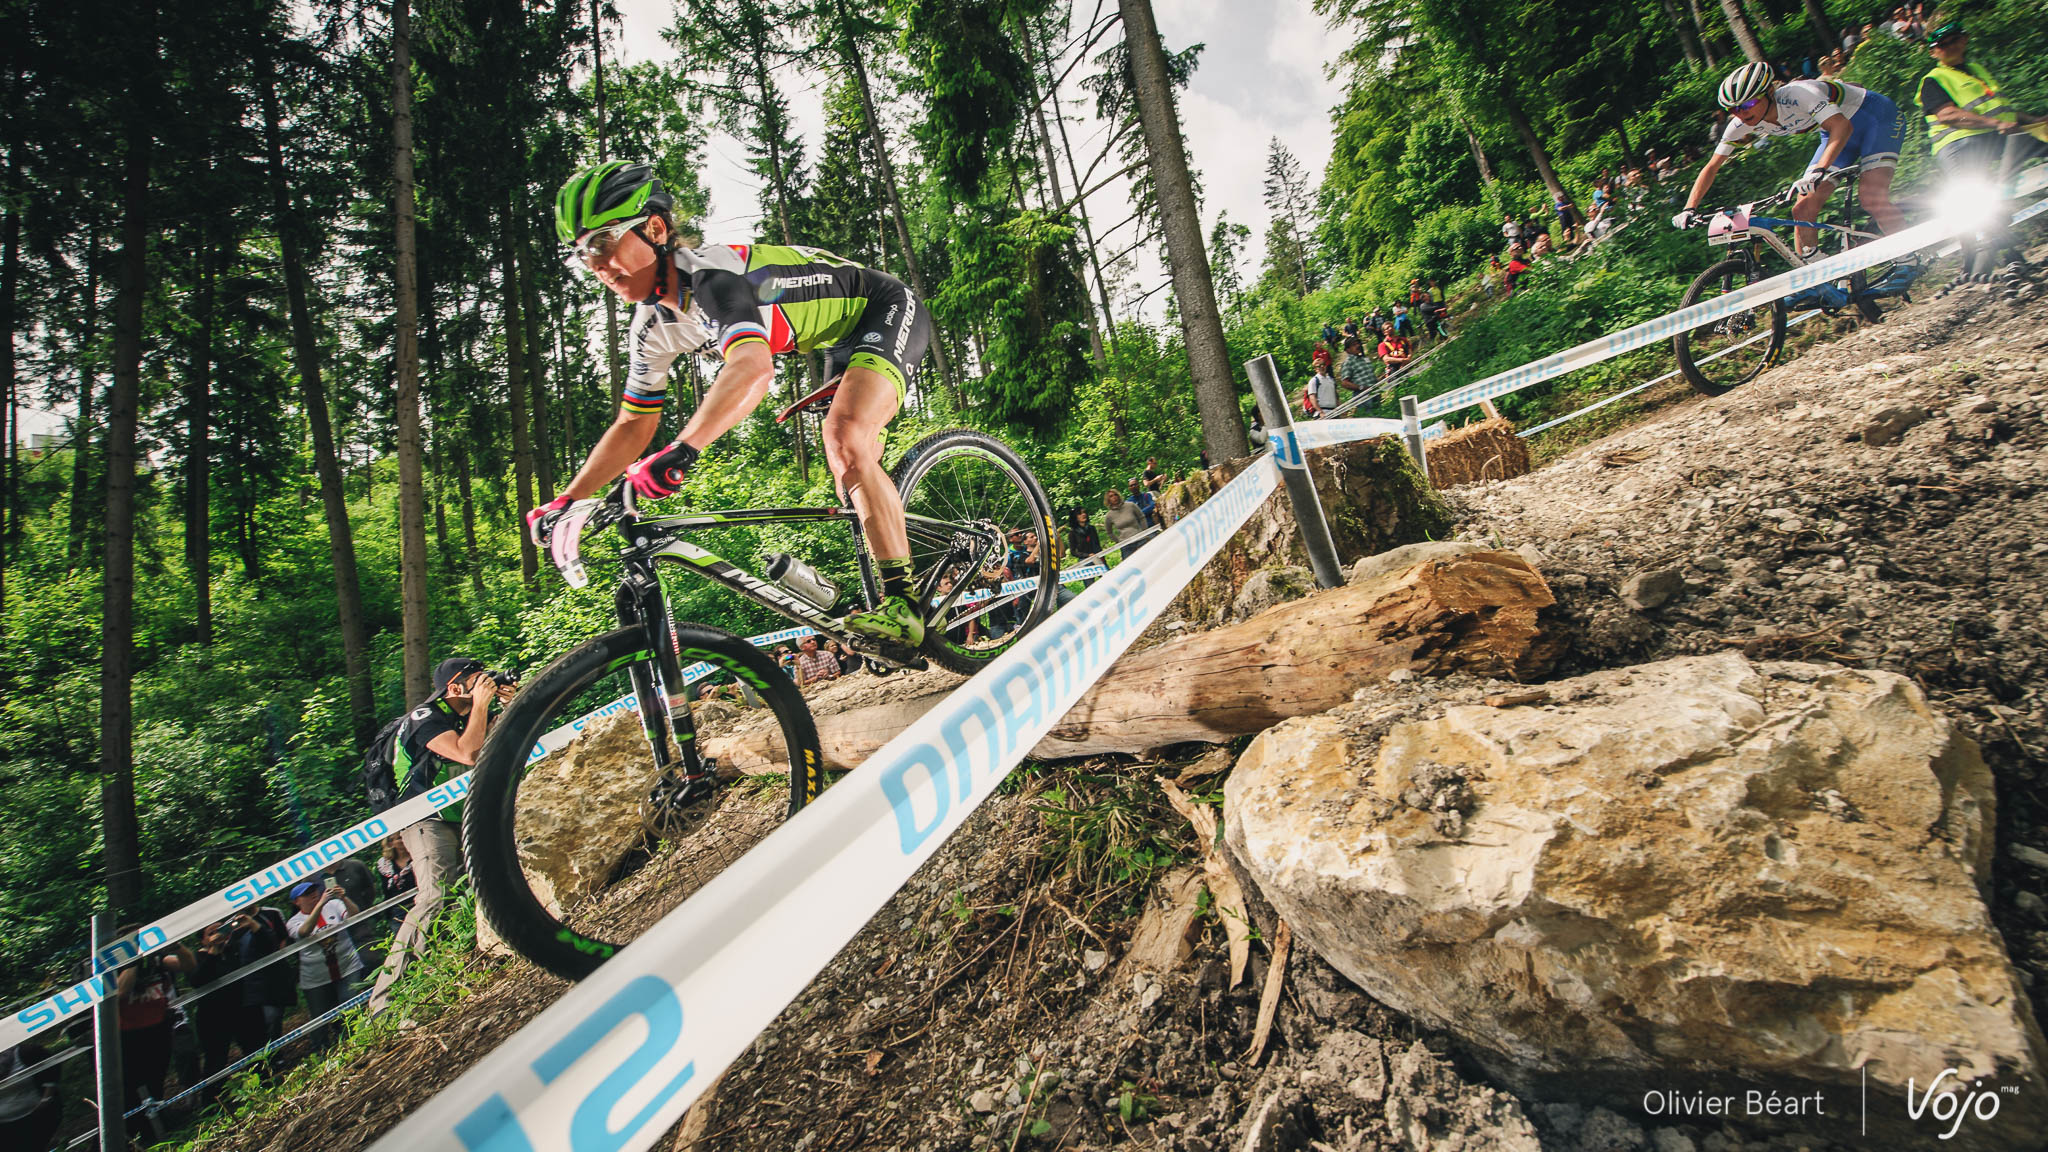 World_Cup_Albstadt_2015_Dames_Neff_Dahle_Pendrel_Copyright_OBeart_VojoMag-21